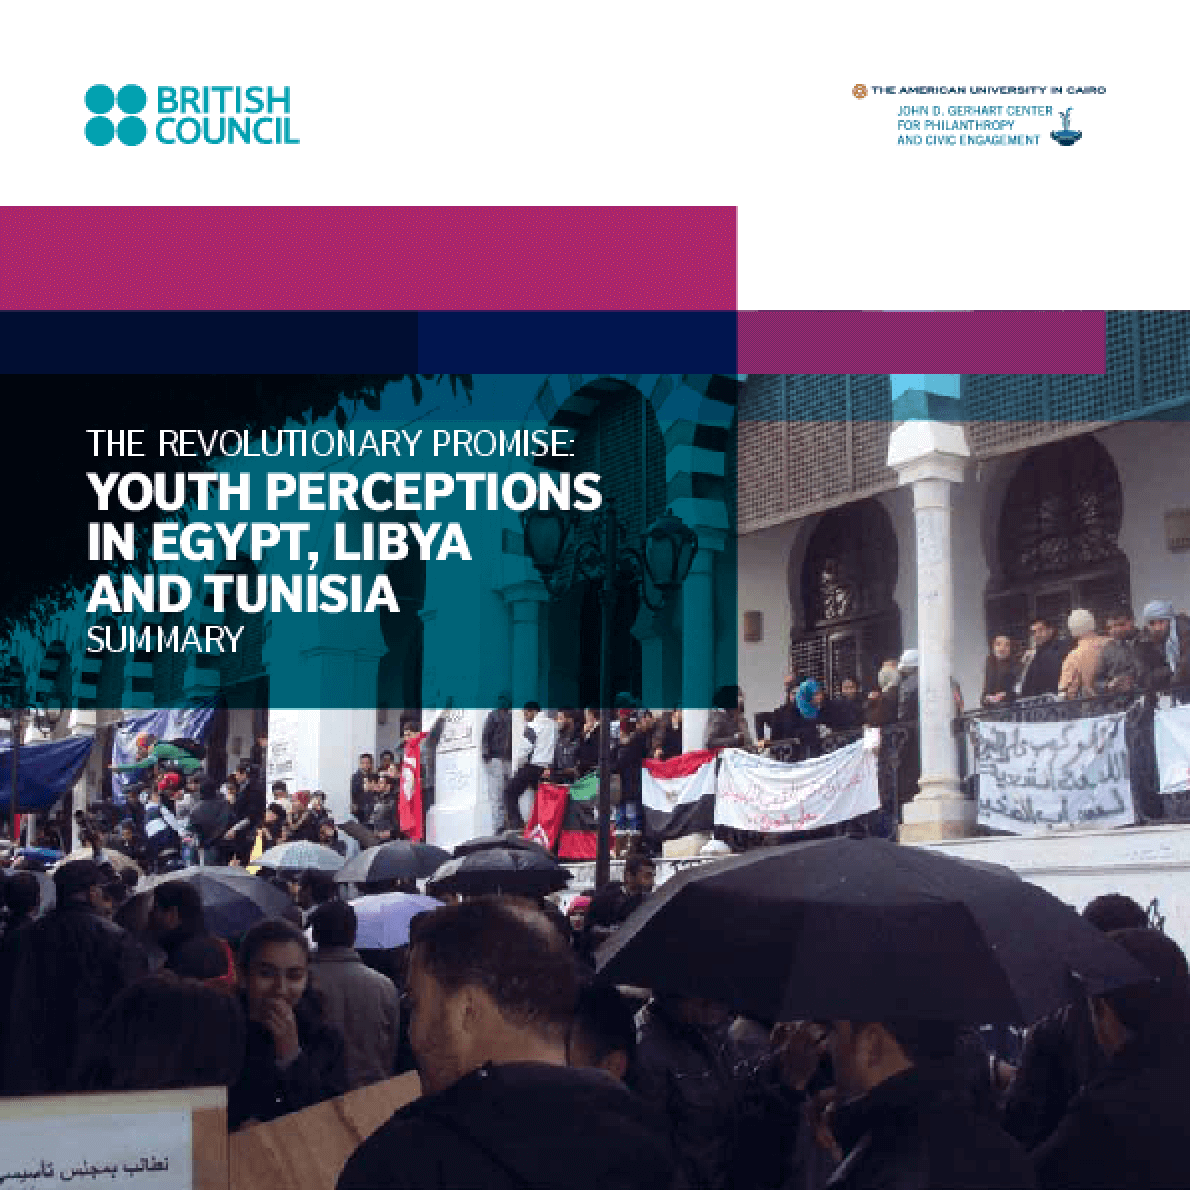 The Revolutionary Promise: Youth Perceptions in Egypt, Libya and Tunisia